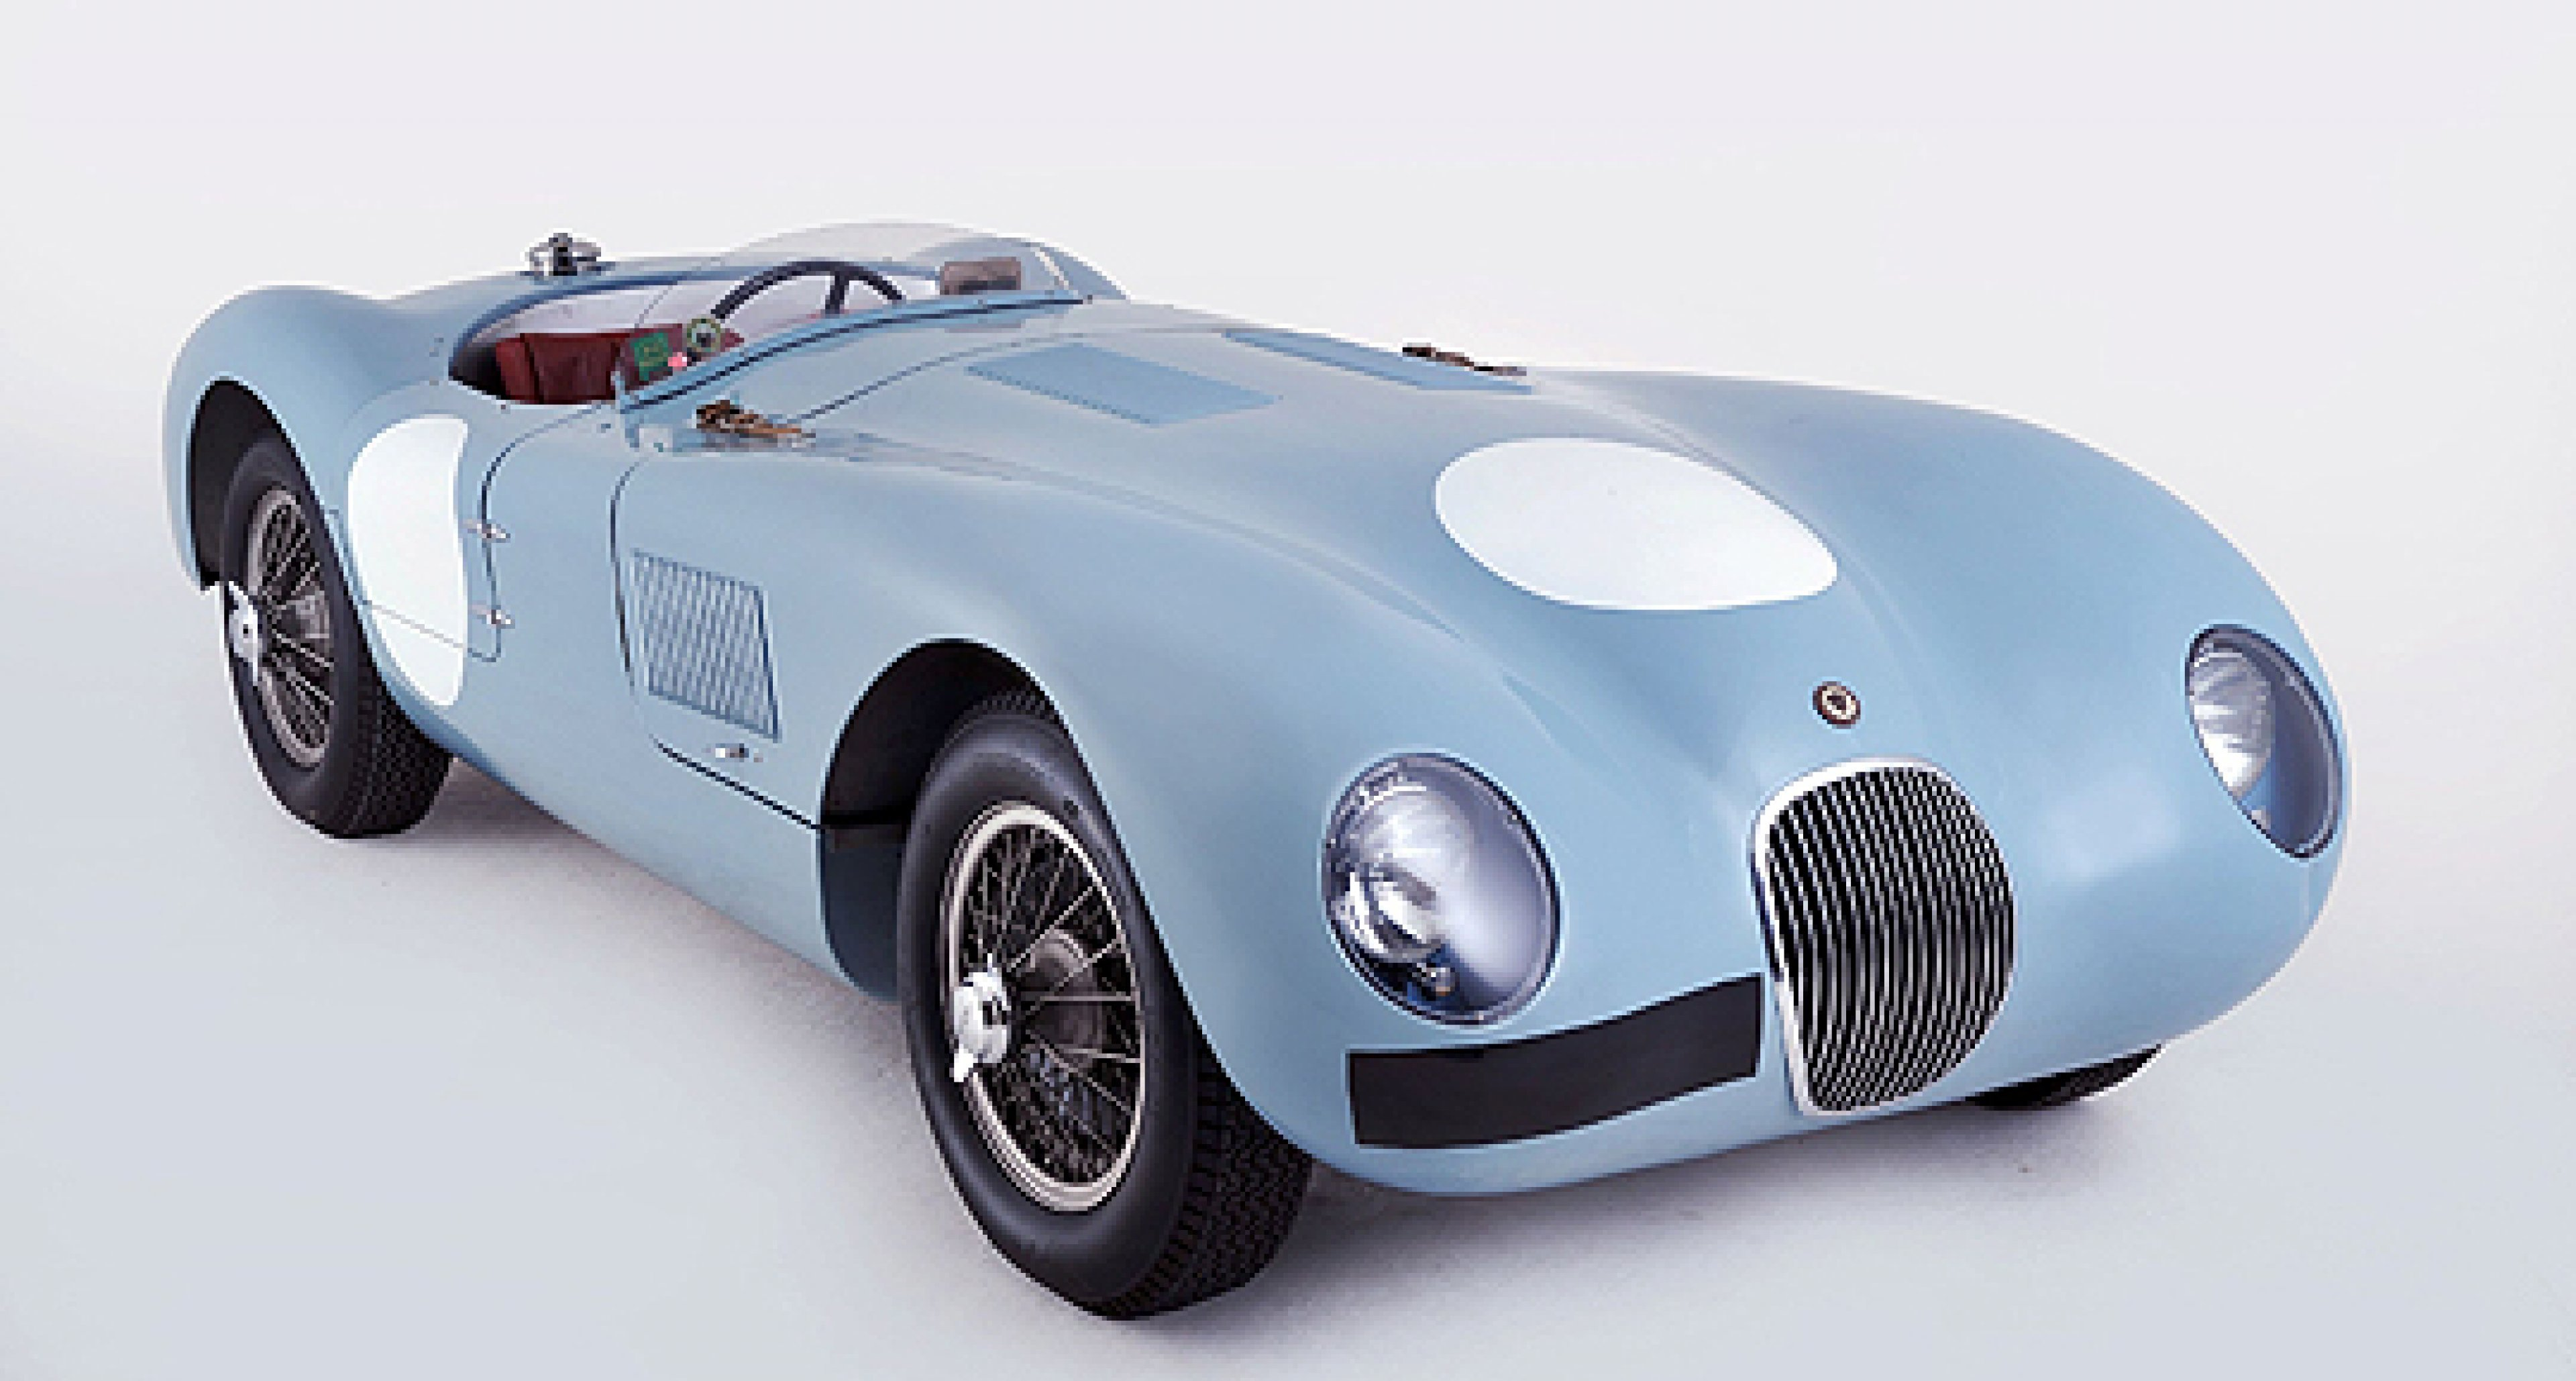 Bonhams Auktion beim Goodwood Revival: Rückblick